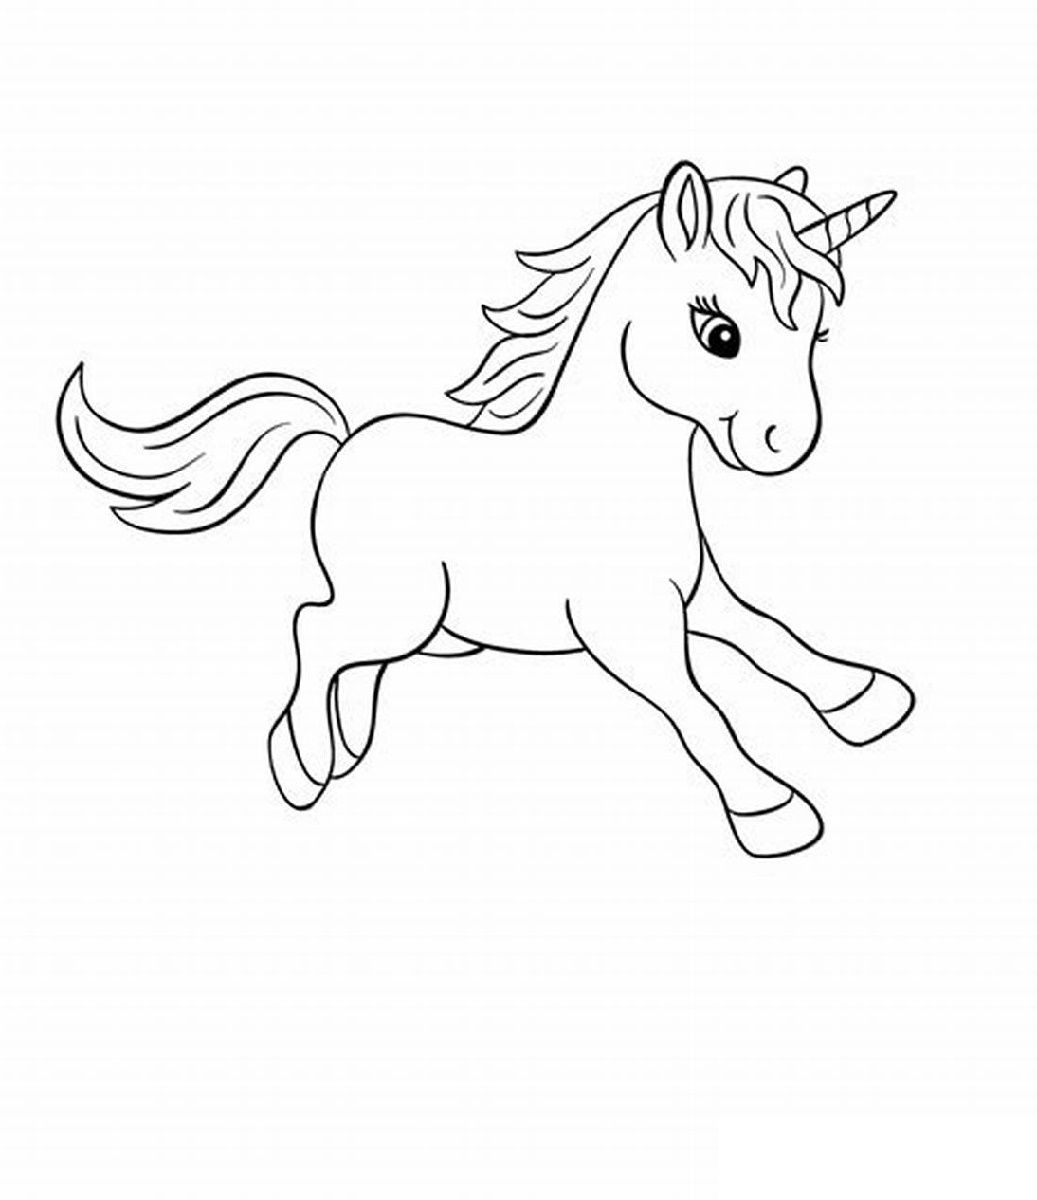 Printable Baby Unicorn Coloring Pages  K16 Worksheets  Unicorn